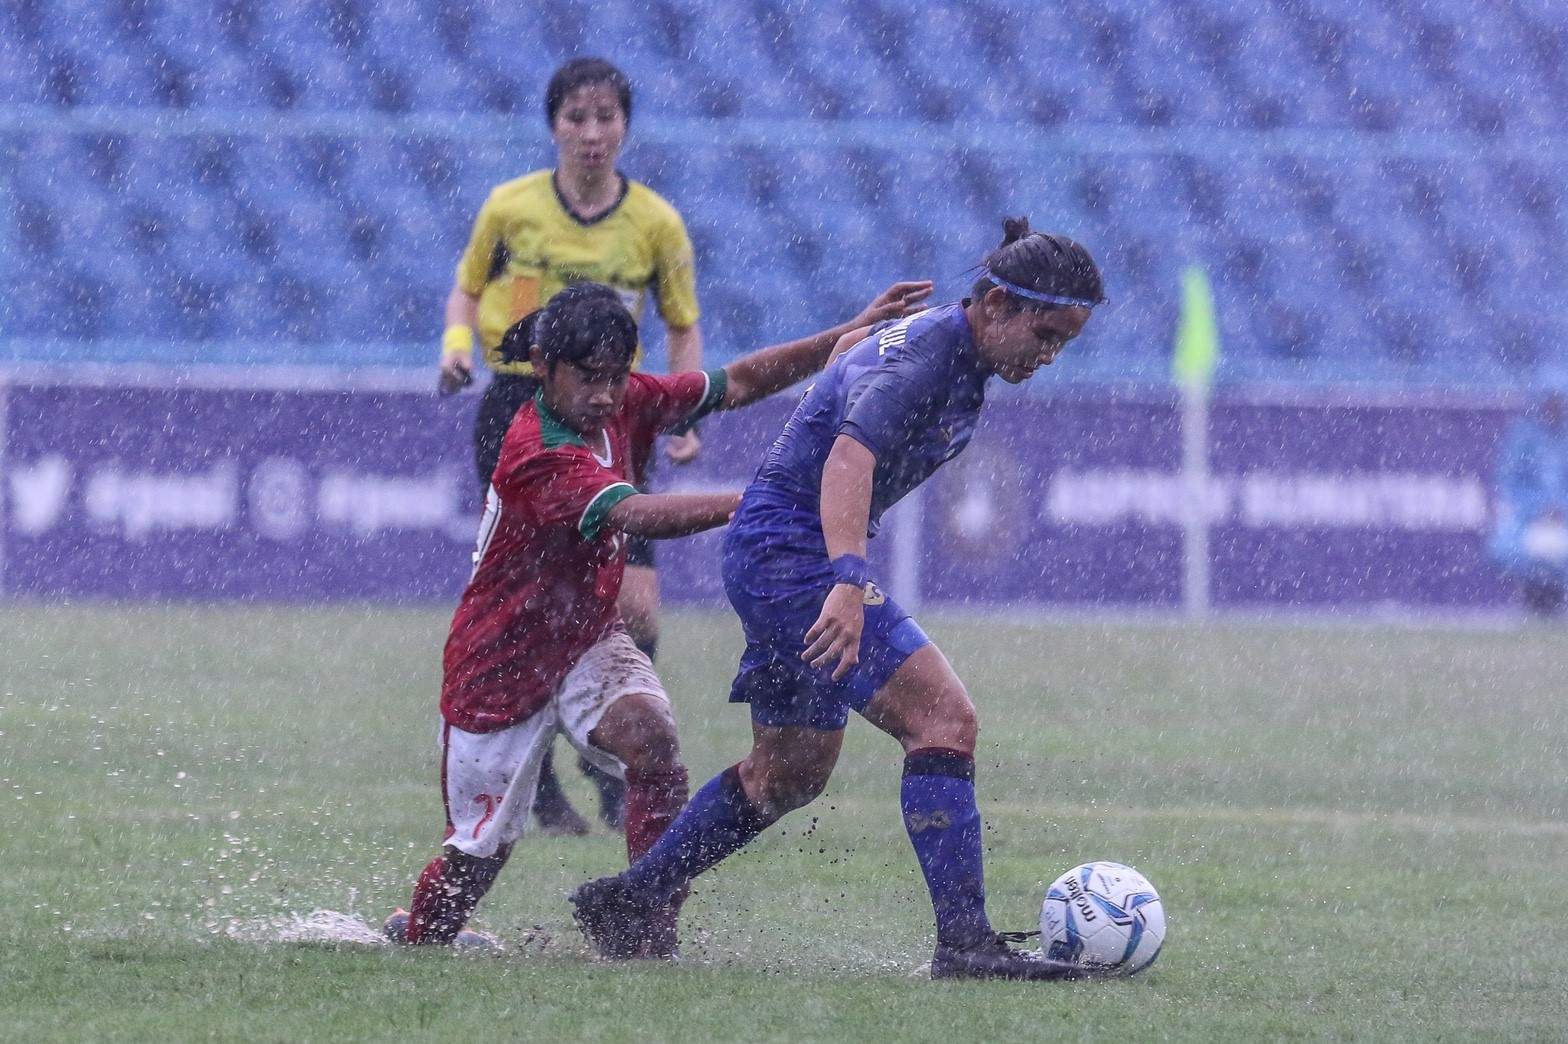 The AFF U-16 Girls' tournament 2018 was held in Indonesia and won by Thailand against Myanmar in the final